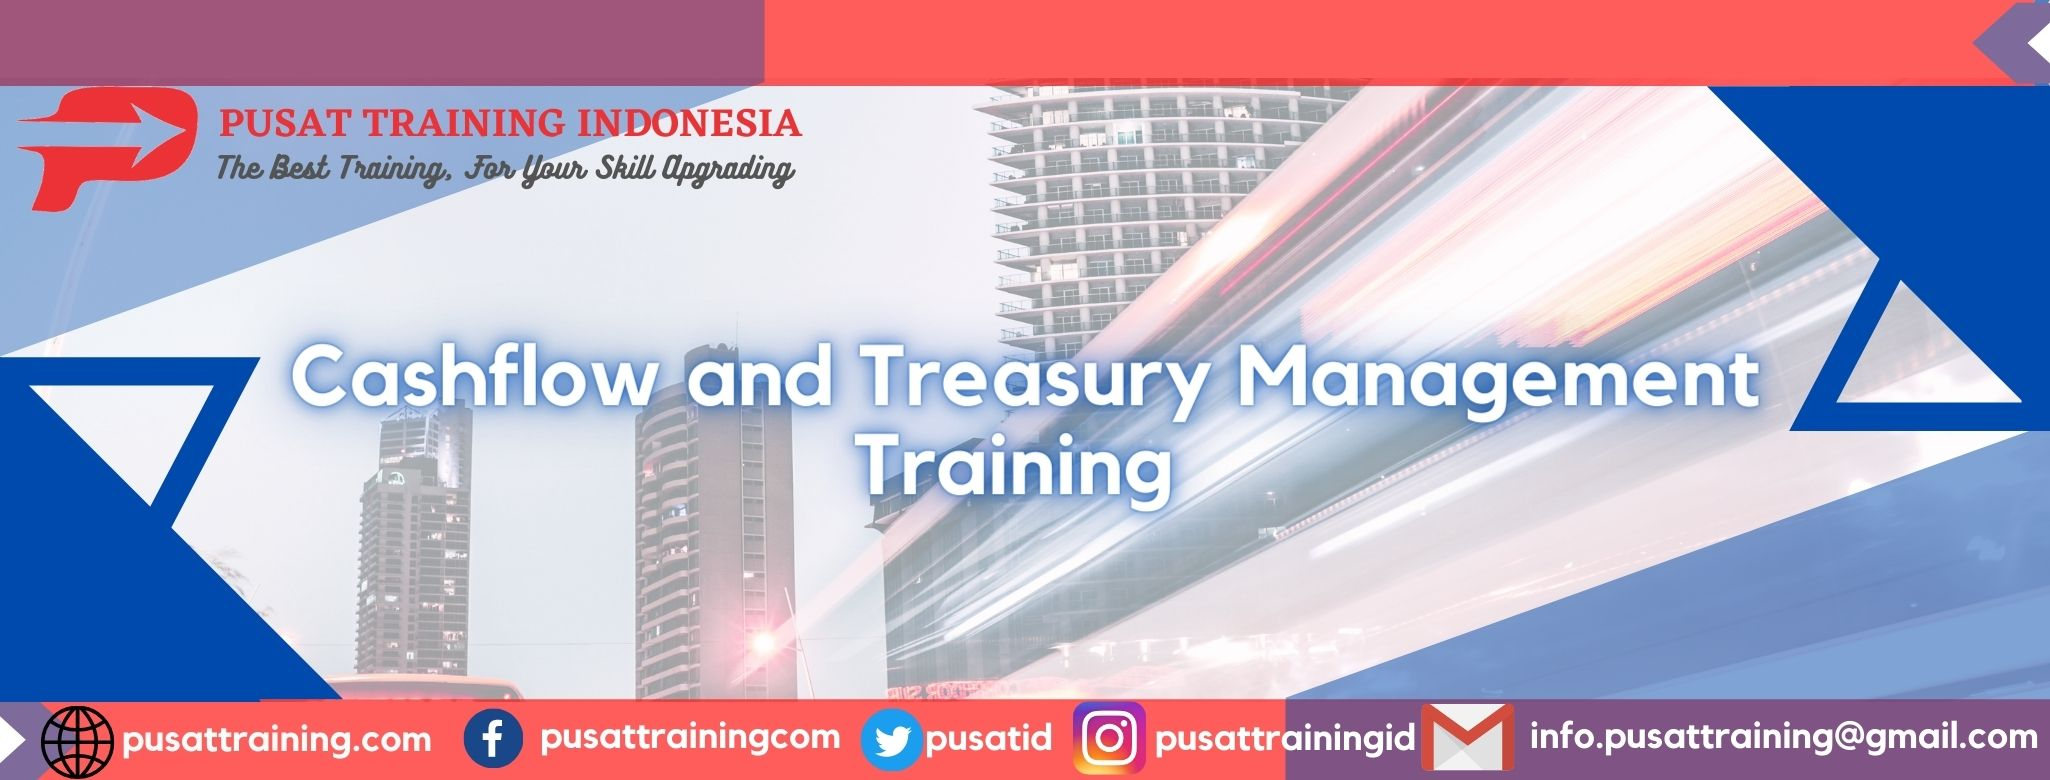 Cashflow-and-Treasury-Management-Training